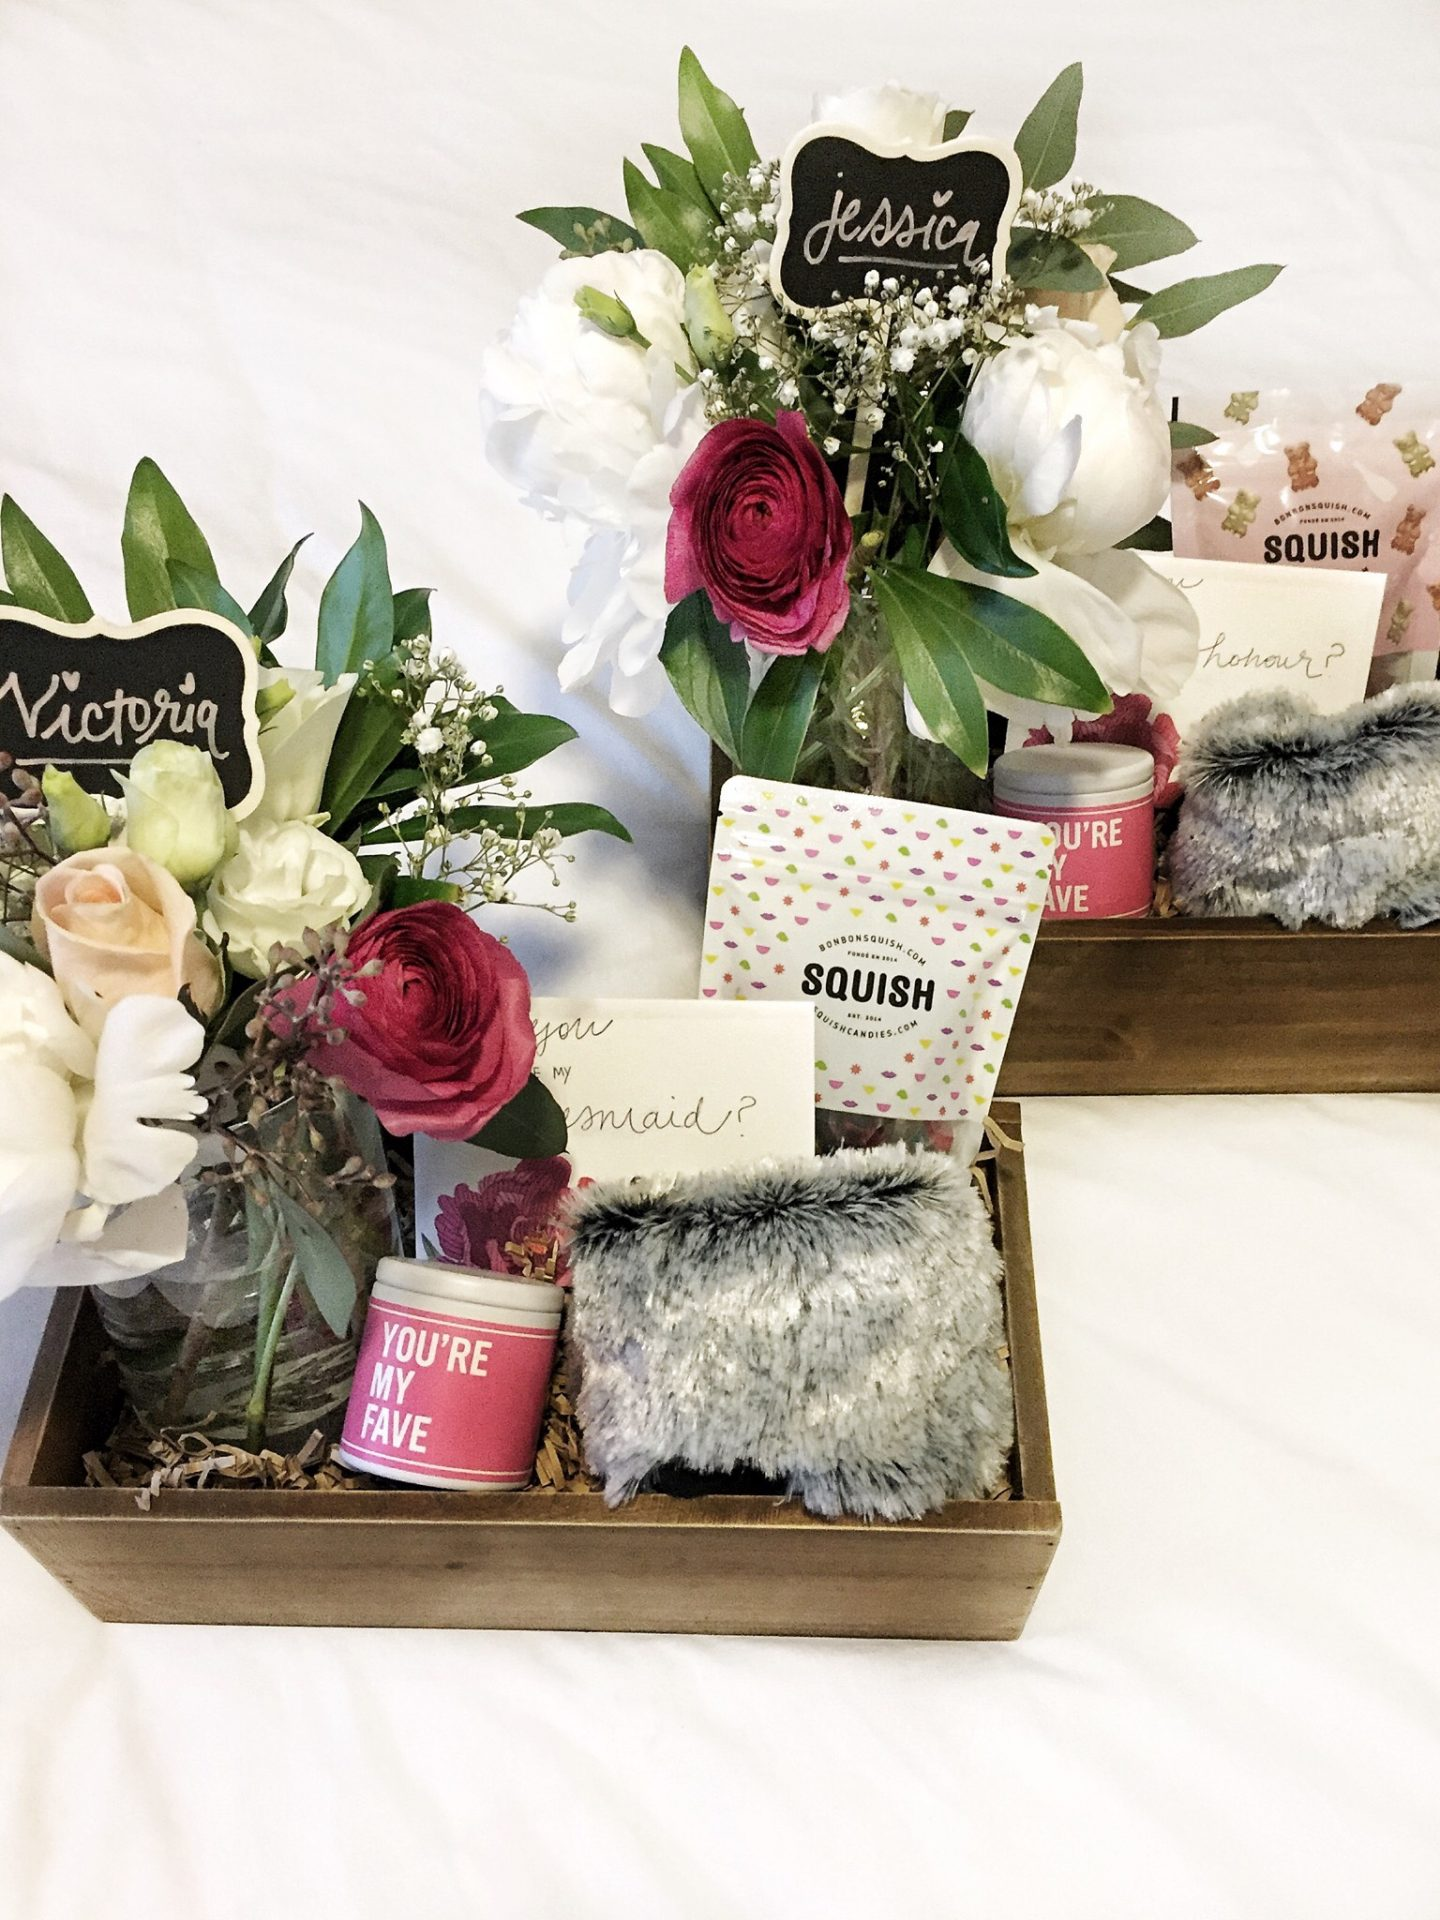 How to make a diy bridesmaid box pretty wont break the bank ok so first and foremost im all about useful gifts and that really guided the choice to do a diy bridesmaid box gift and the contents within solutioingenieria Choice Image